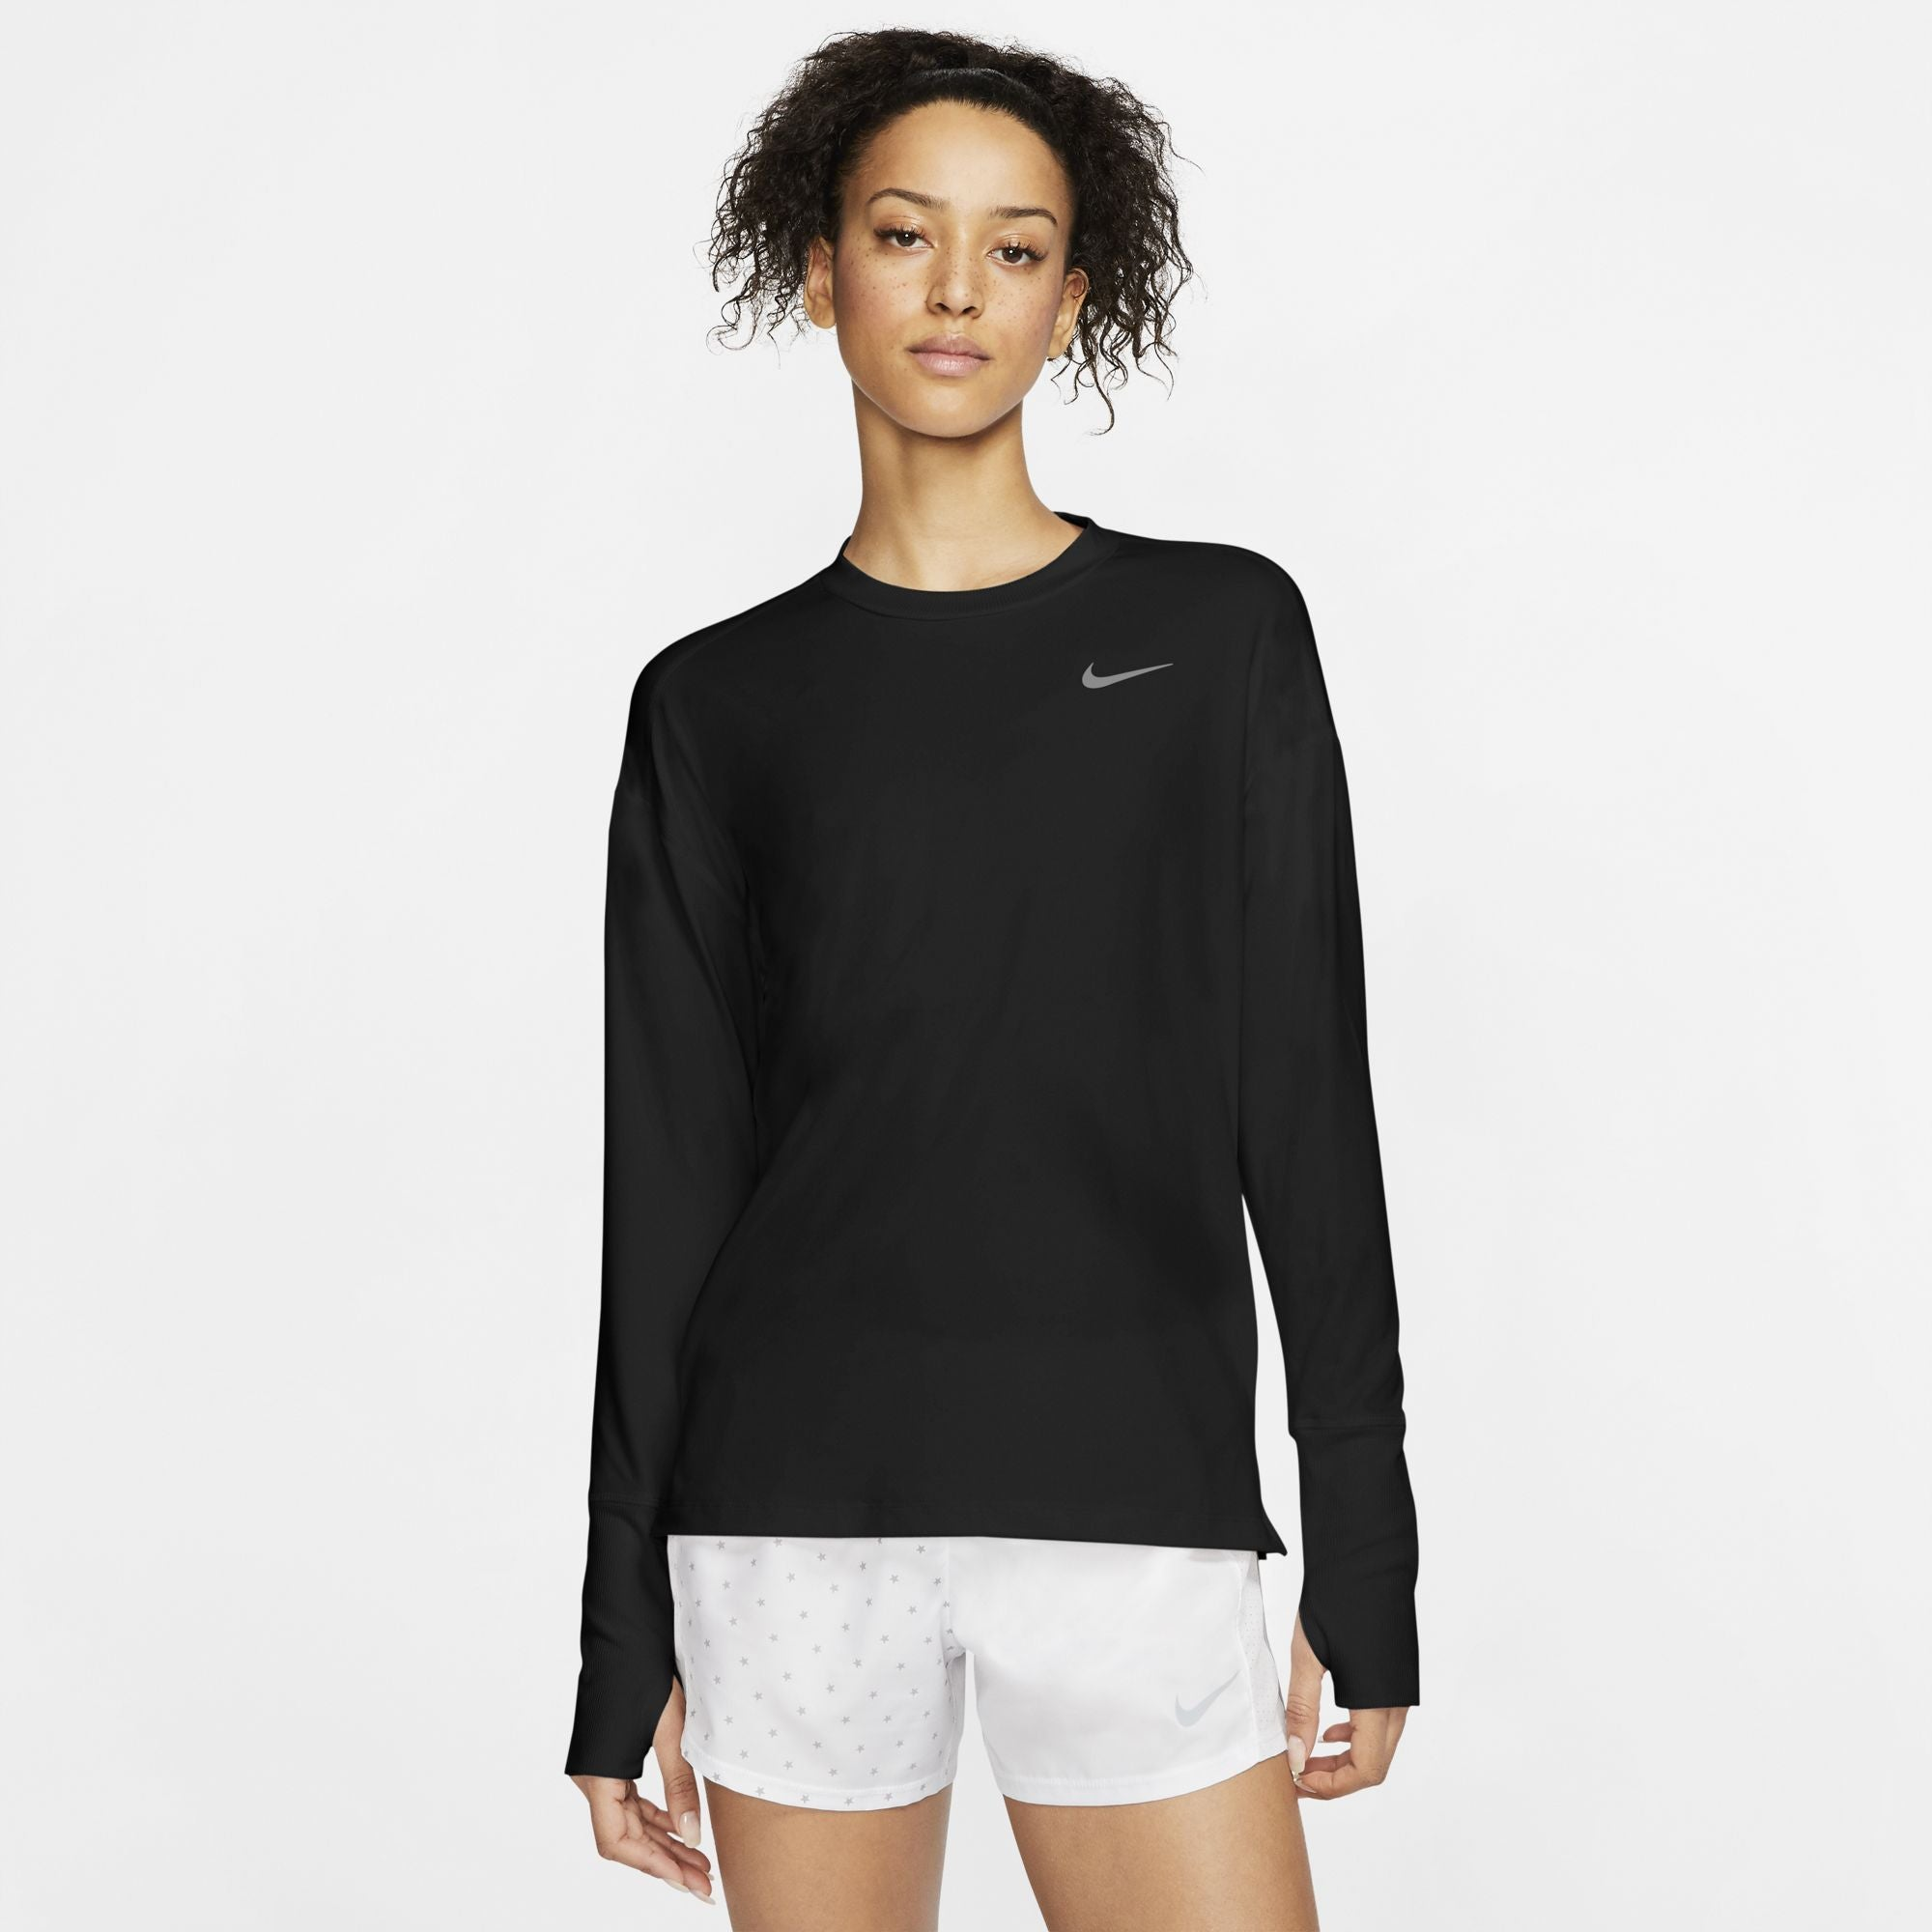 Nike Womens Element Long Sleeve Running Top - Sole Motive